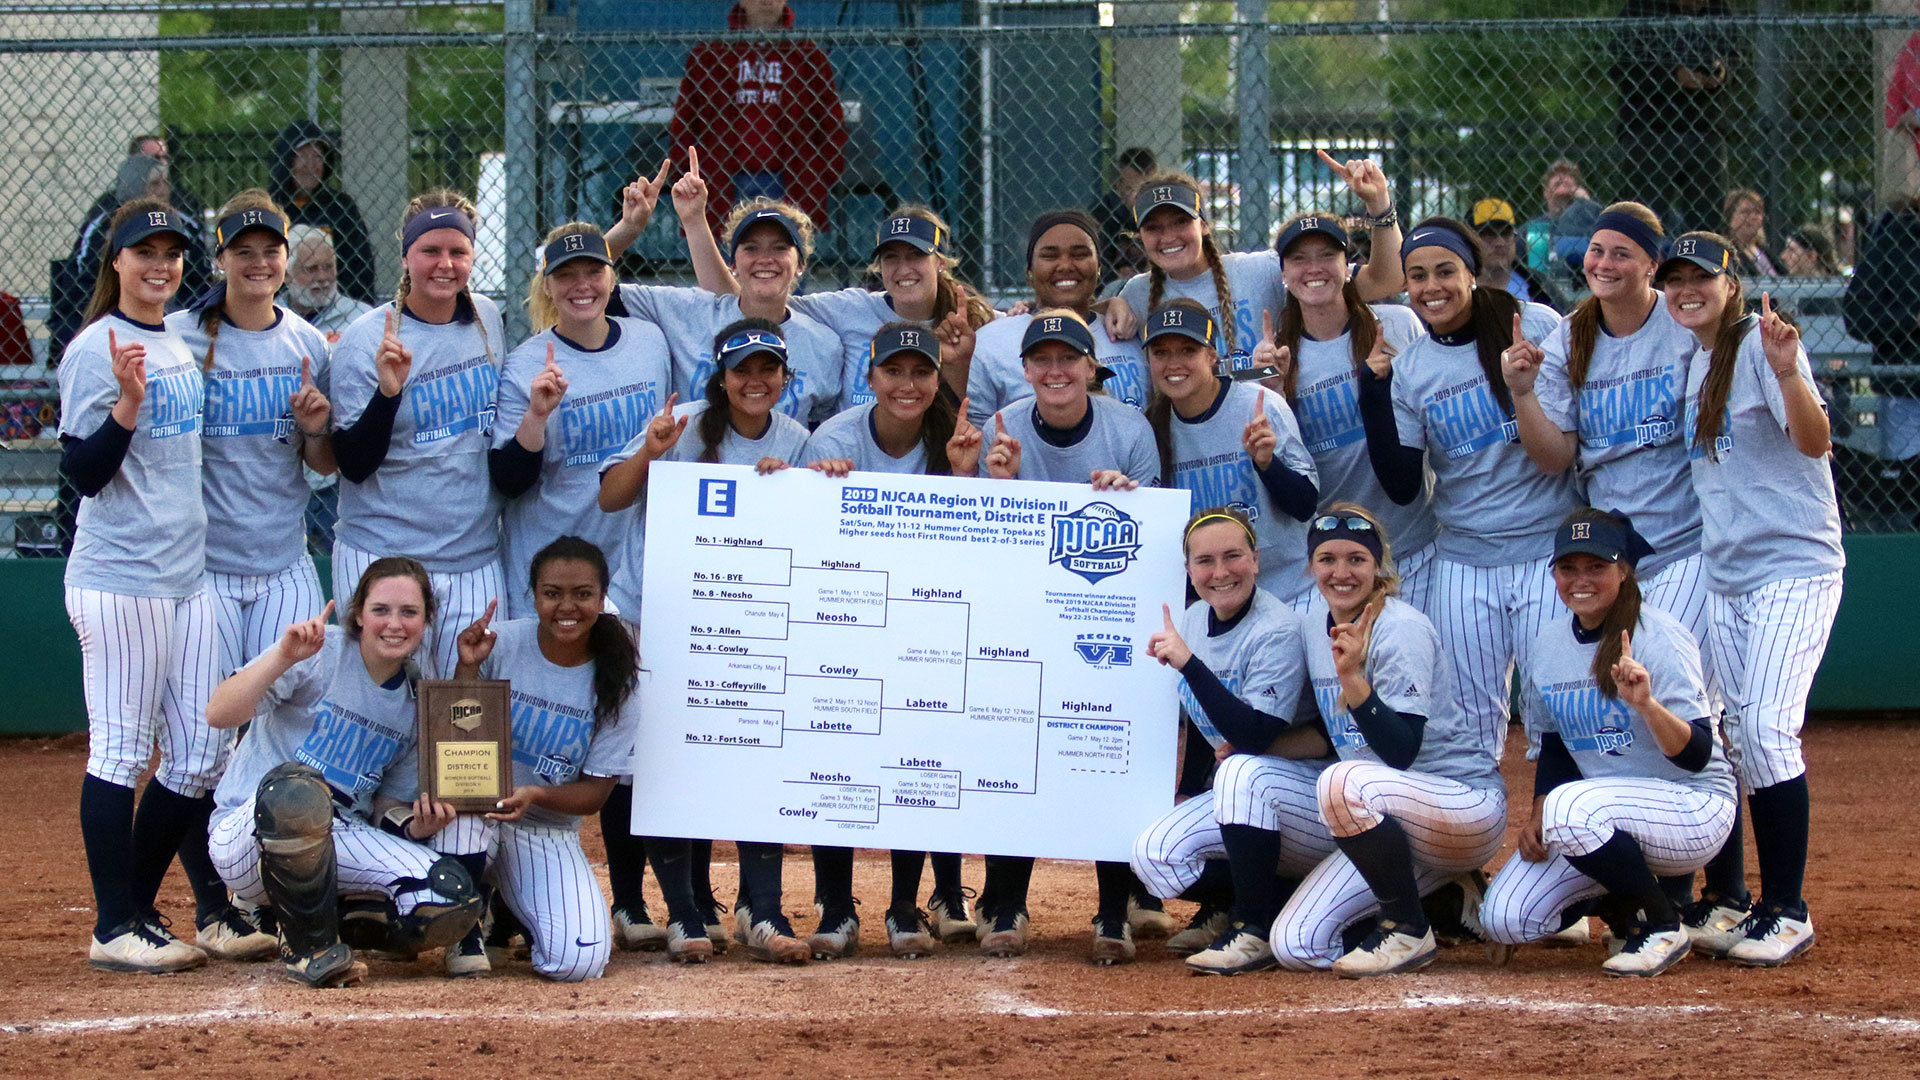 Highland Softball Wins Region Title to Earn Trip to Nationals